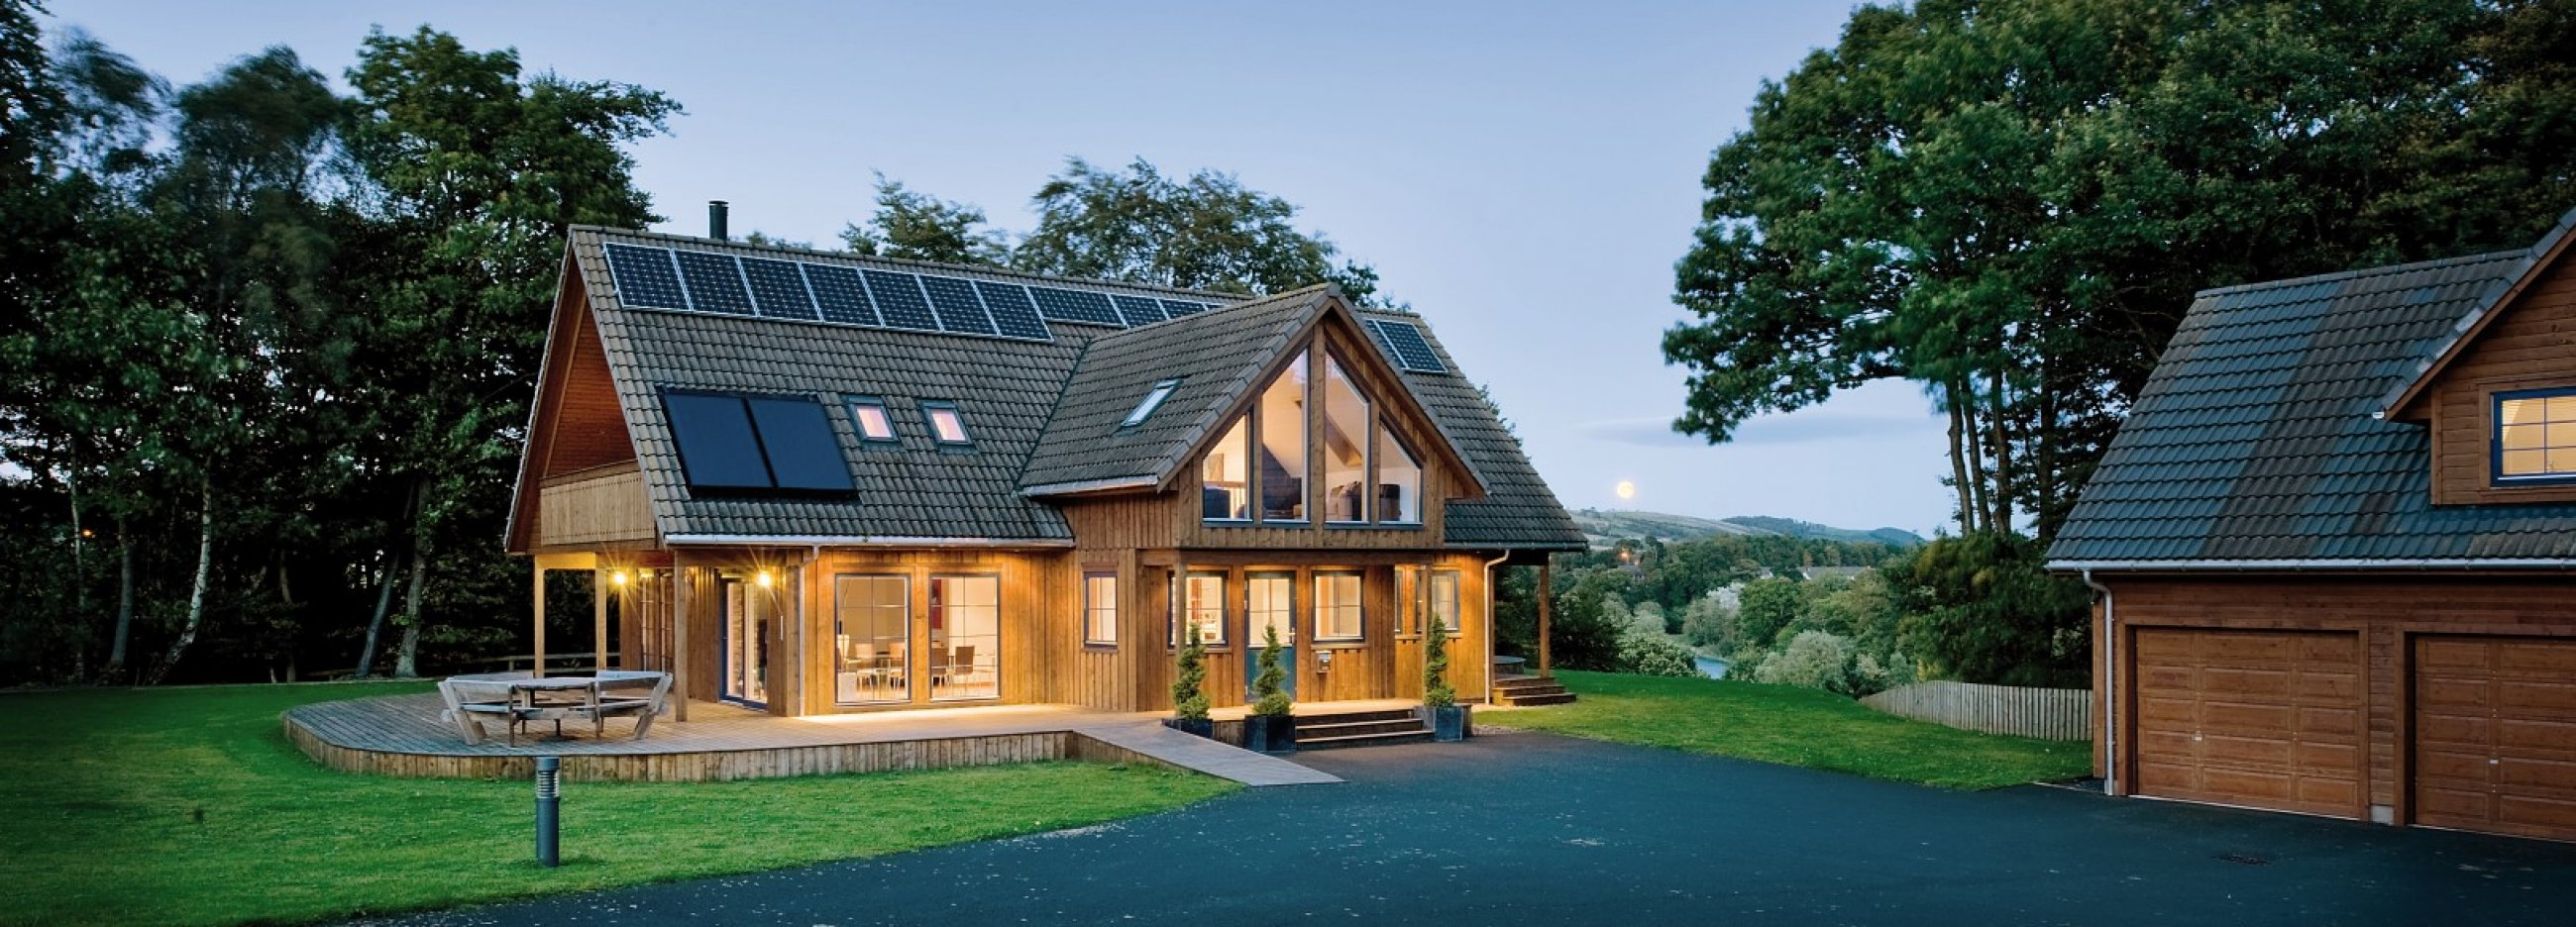 Welcome To Fjordhus Suppliers Of Scandinavian Timber Framed Homes In The Uk